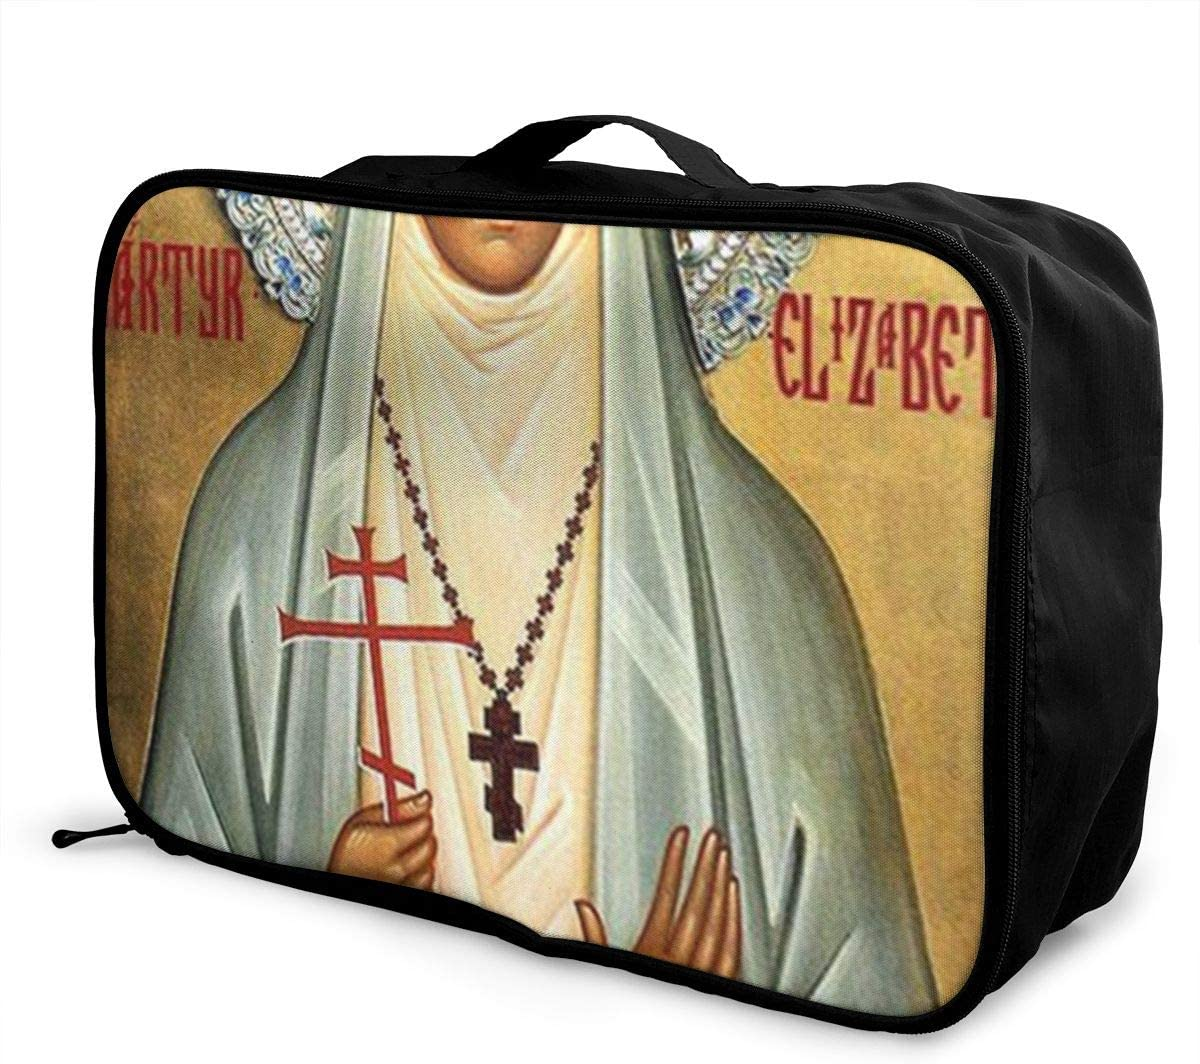 St Elizabeth The New Martyr Travel Carry-on Luggage Weekender Bag Overnight Tote Flight Duffel In Trolley Handle